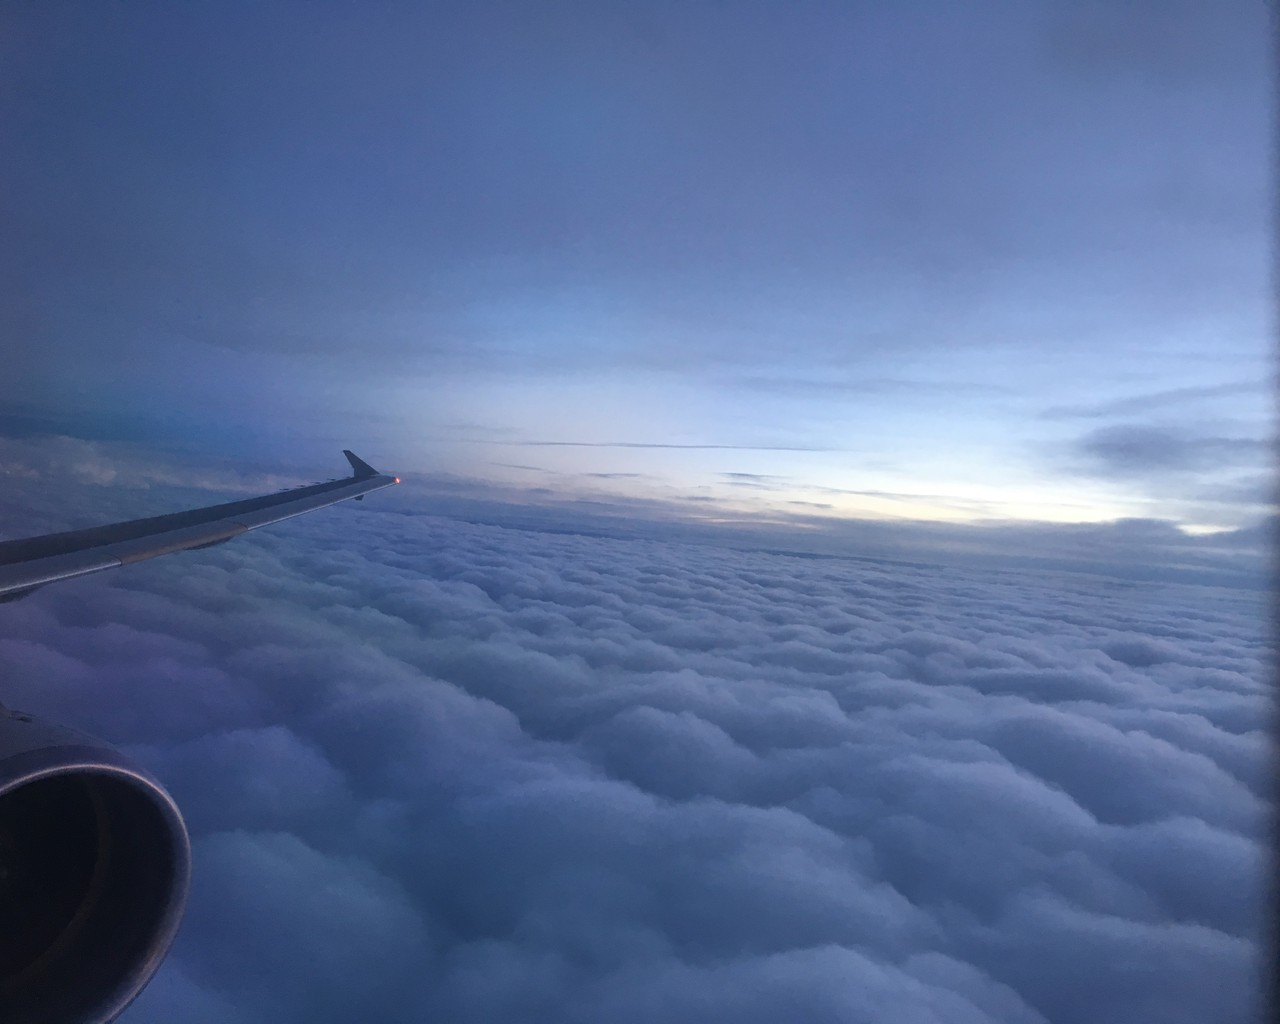 Review Of American Airlines Flight From Orlando To